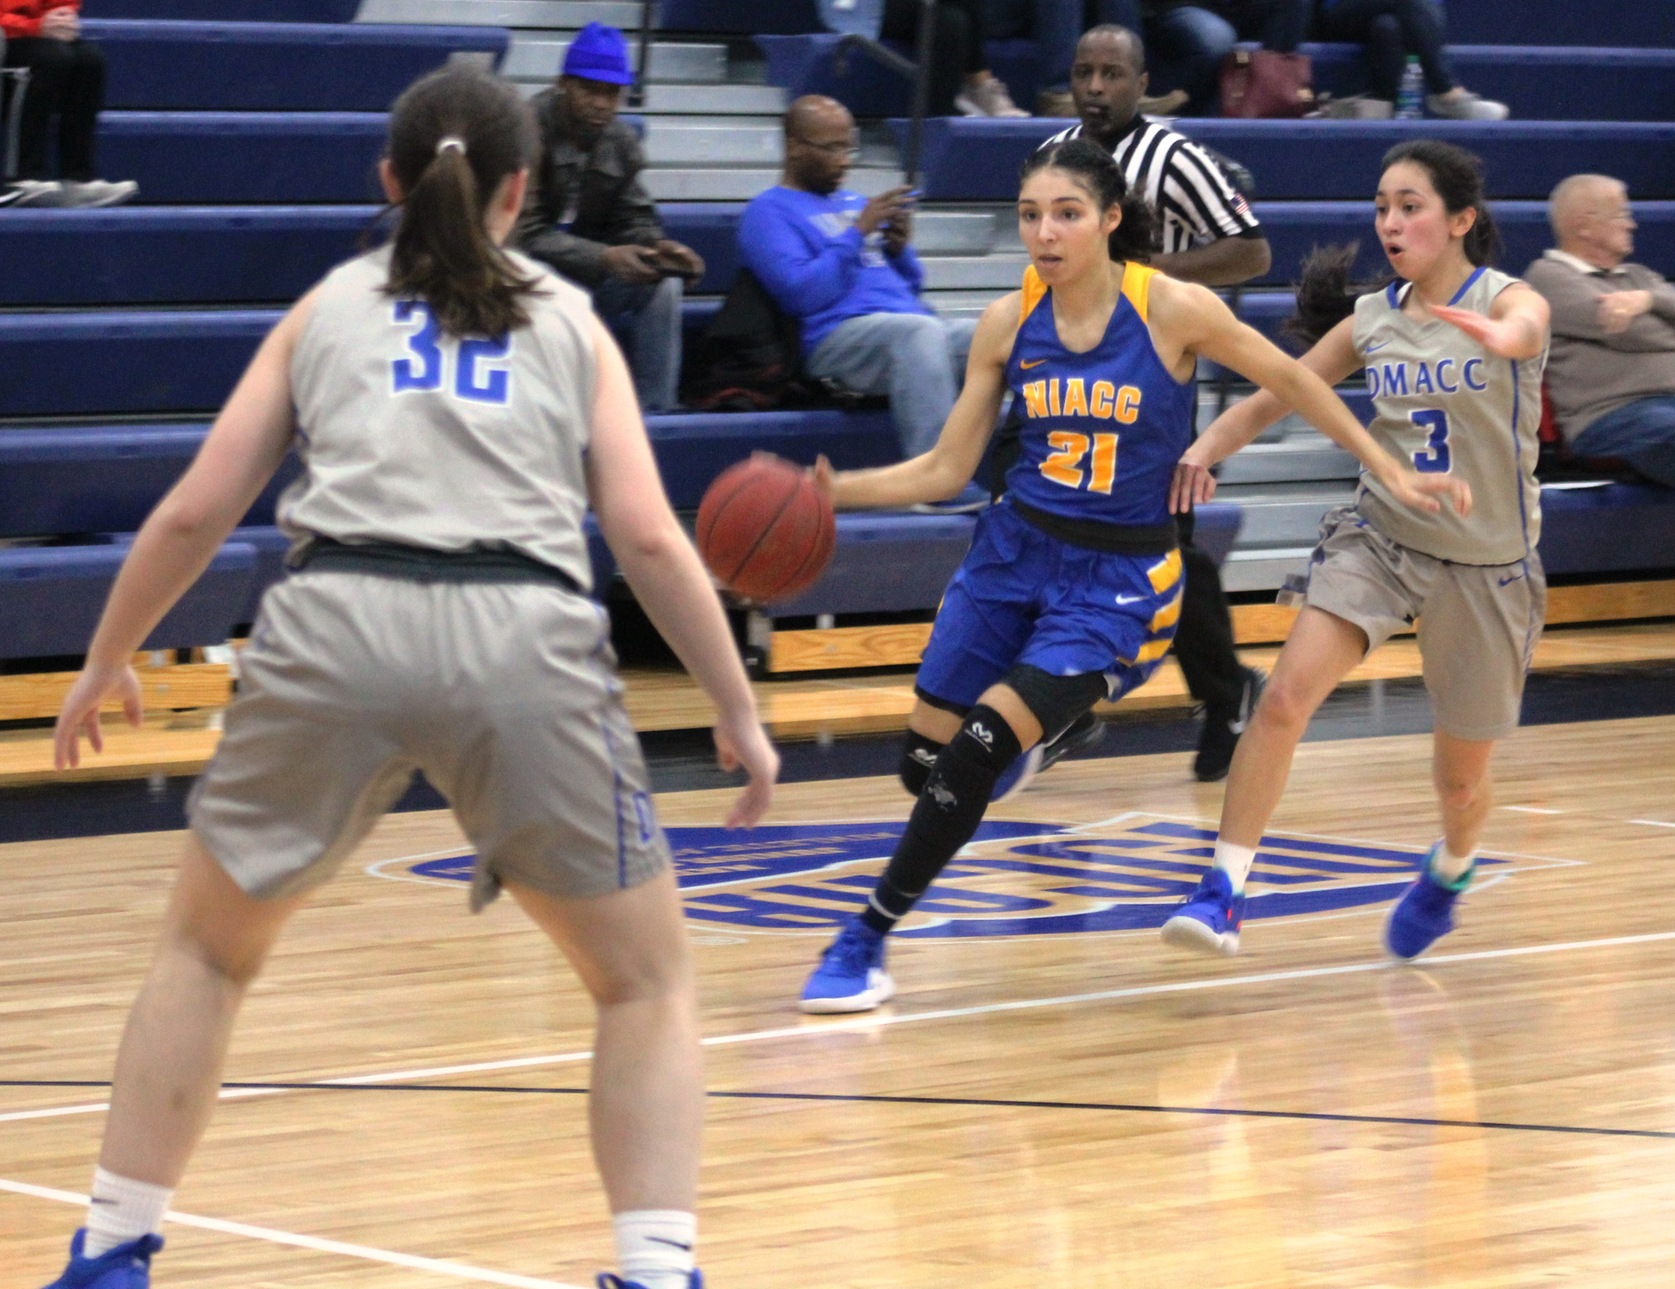 Jada Buford scored 39 points in the No. 5 Lady Trojans' win over DMACC on Wednesday.